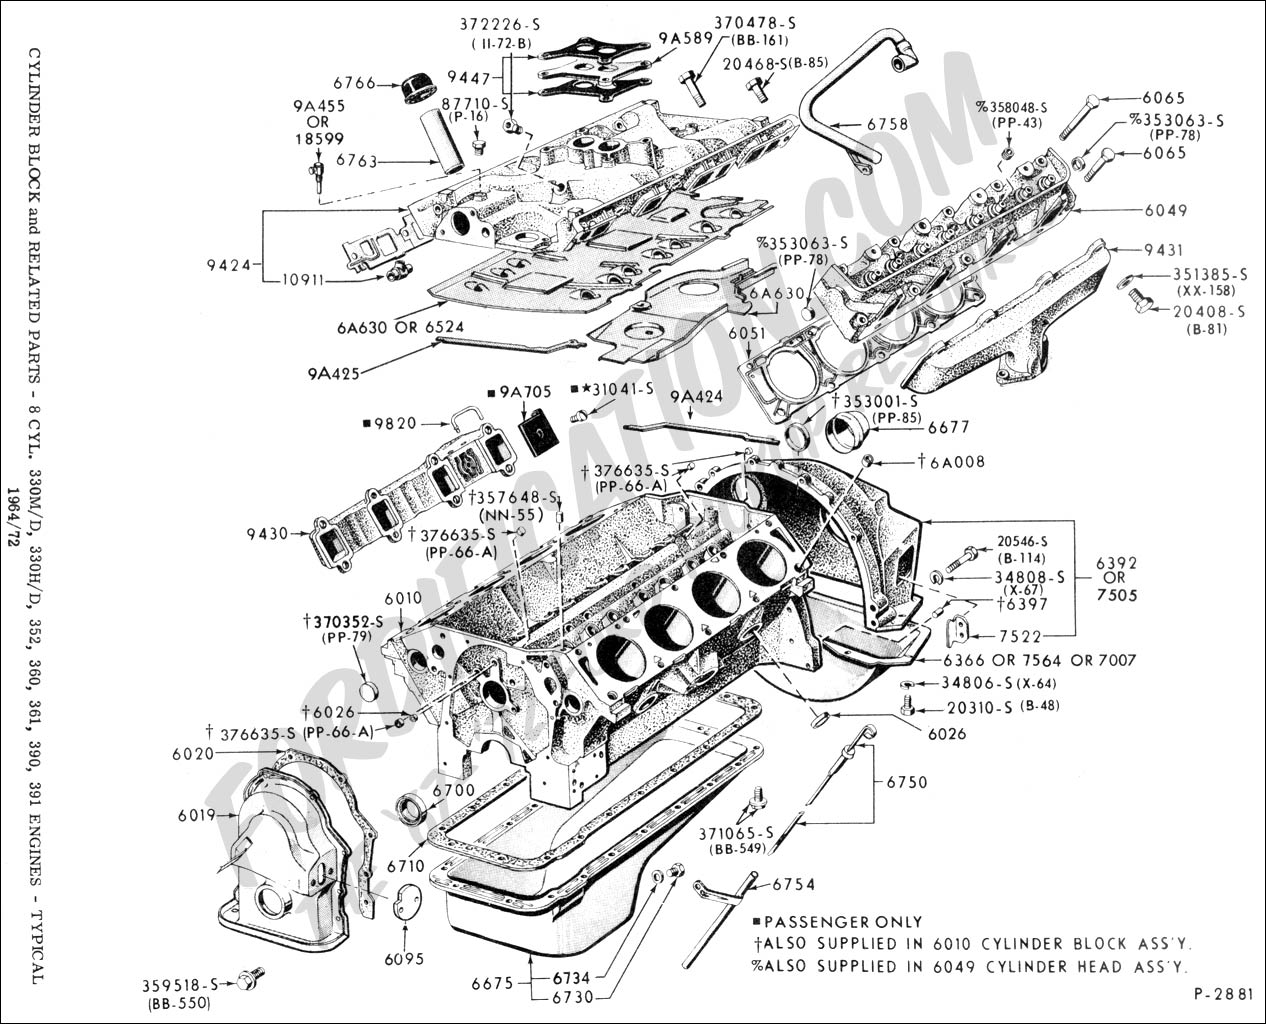 Ford Mustang 289 Engine Diagram on Diagrams Of Chevy 4 Cylinder 2 8 Liter Engine